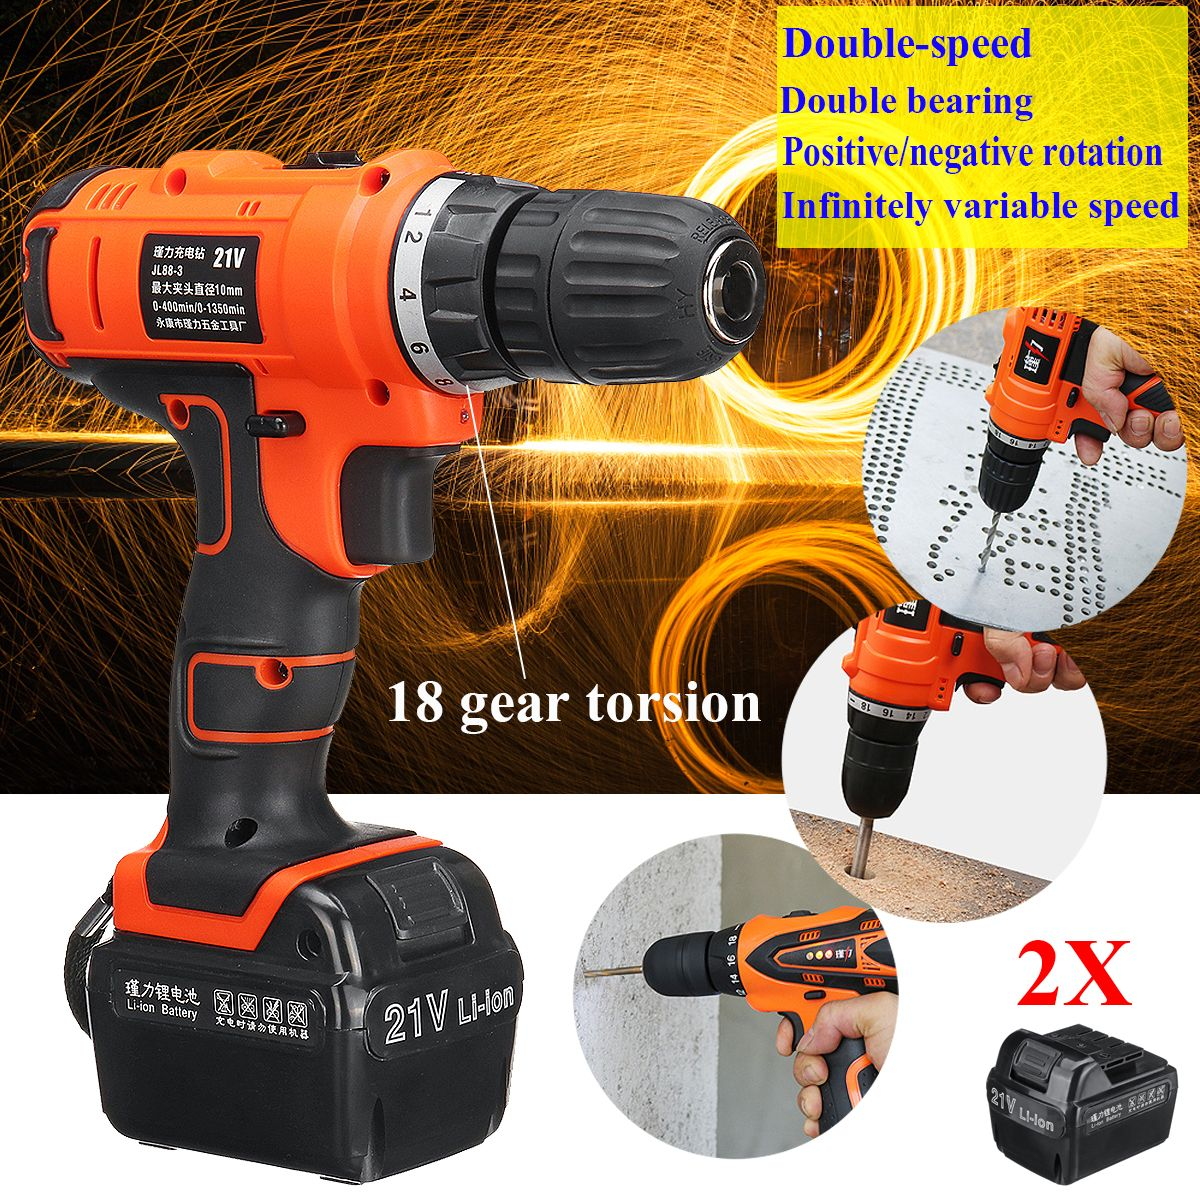 2Types 21V Lithium Battery LED Light Electric Screwdriver Rechargeable Cordless Power Hammer Drill Driver Dual Speed Reverse